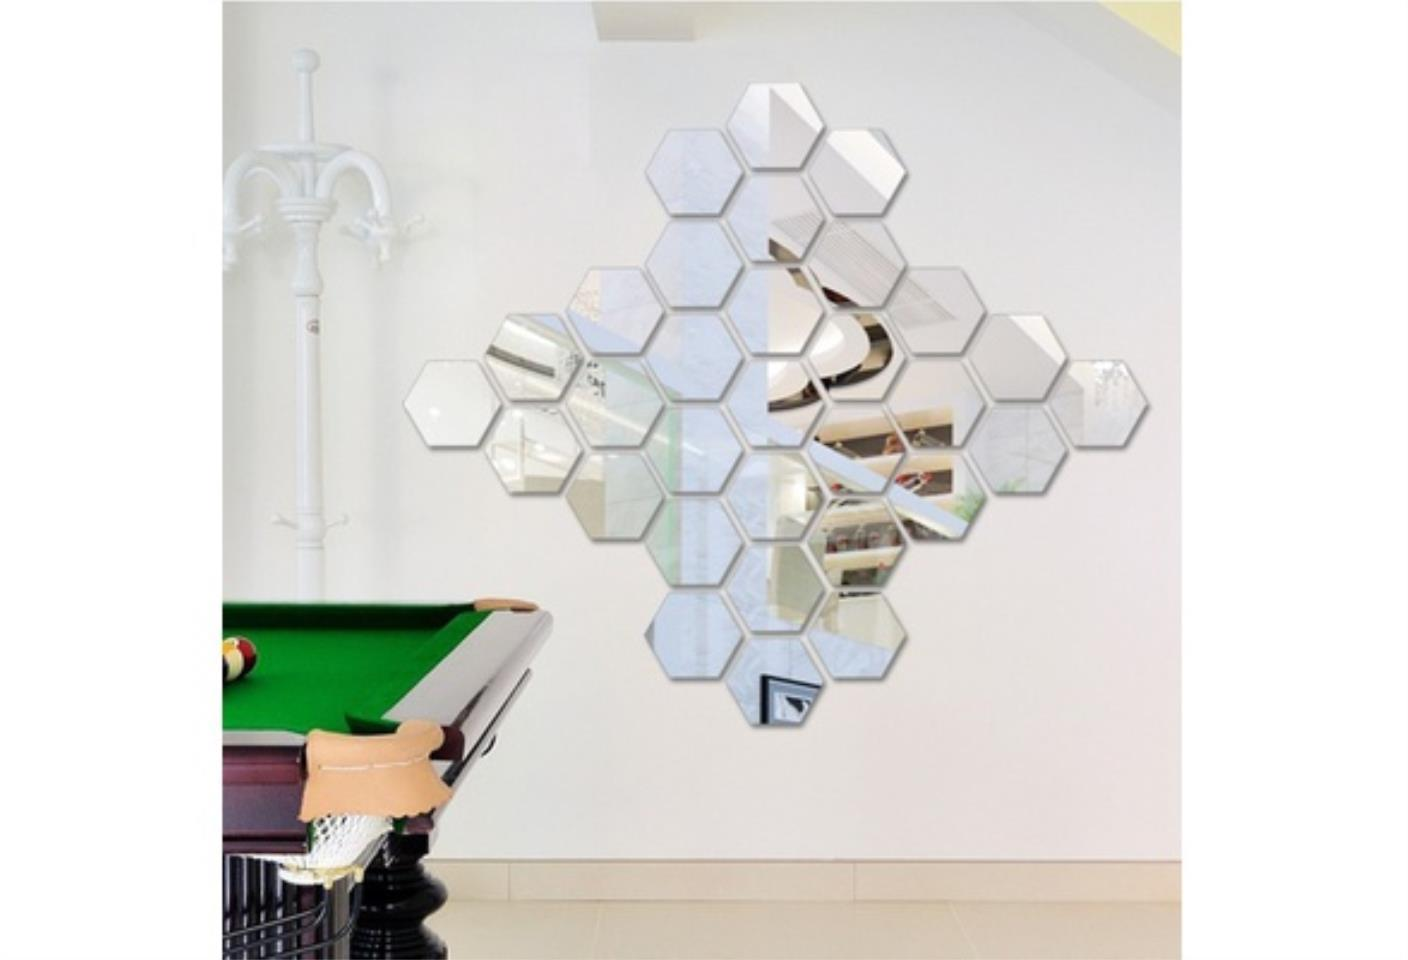 12pcs /set Hexagonal Mirror Wall Sticker Diy Brick Wall Stickers Living Room Decor Foam Waterproof